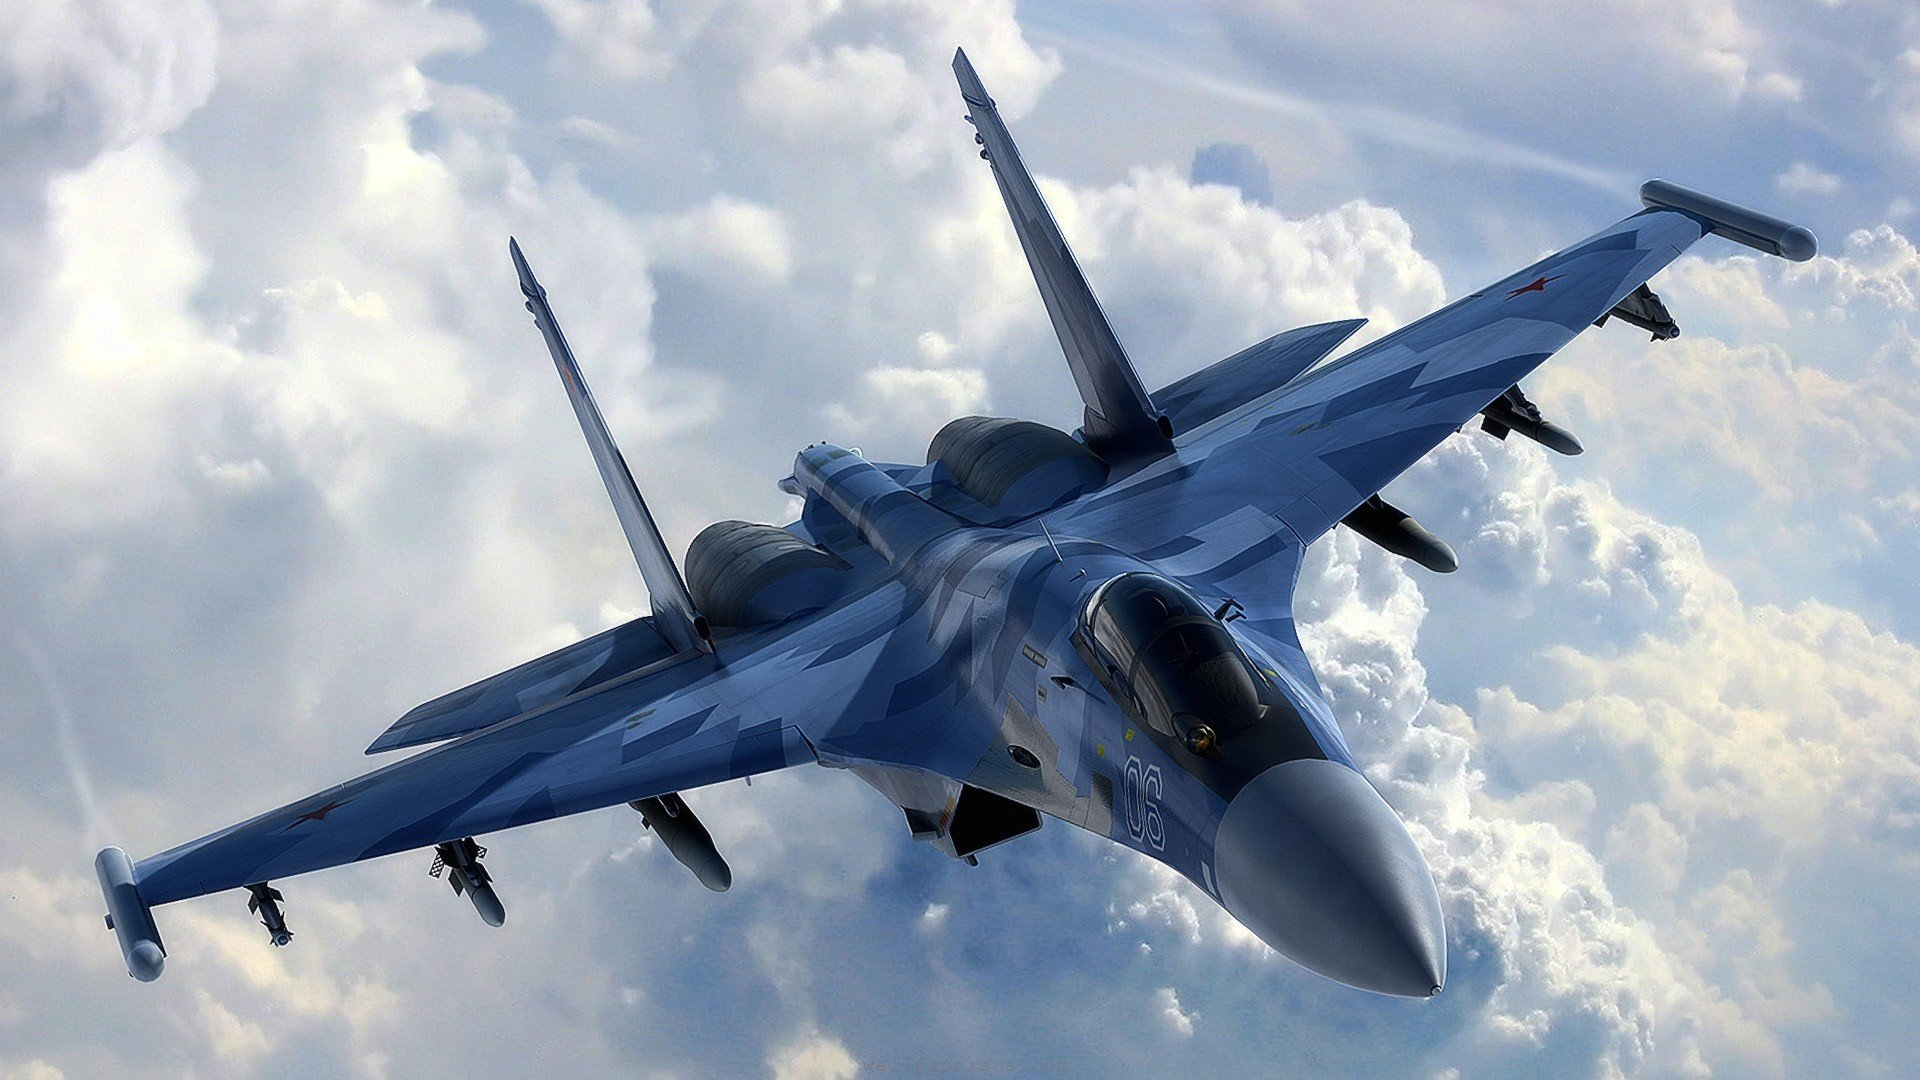 Sukhoi T-50 Fighter Jet military airplane plane stealth pak f-a russian (26)